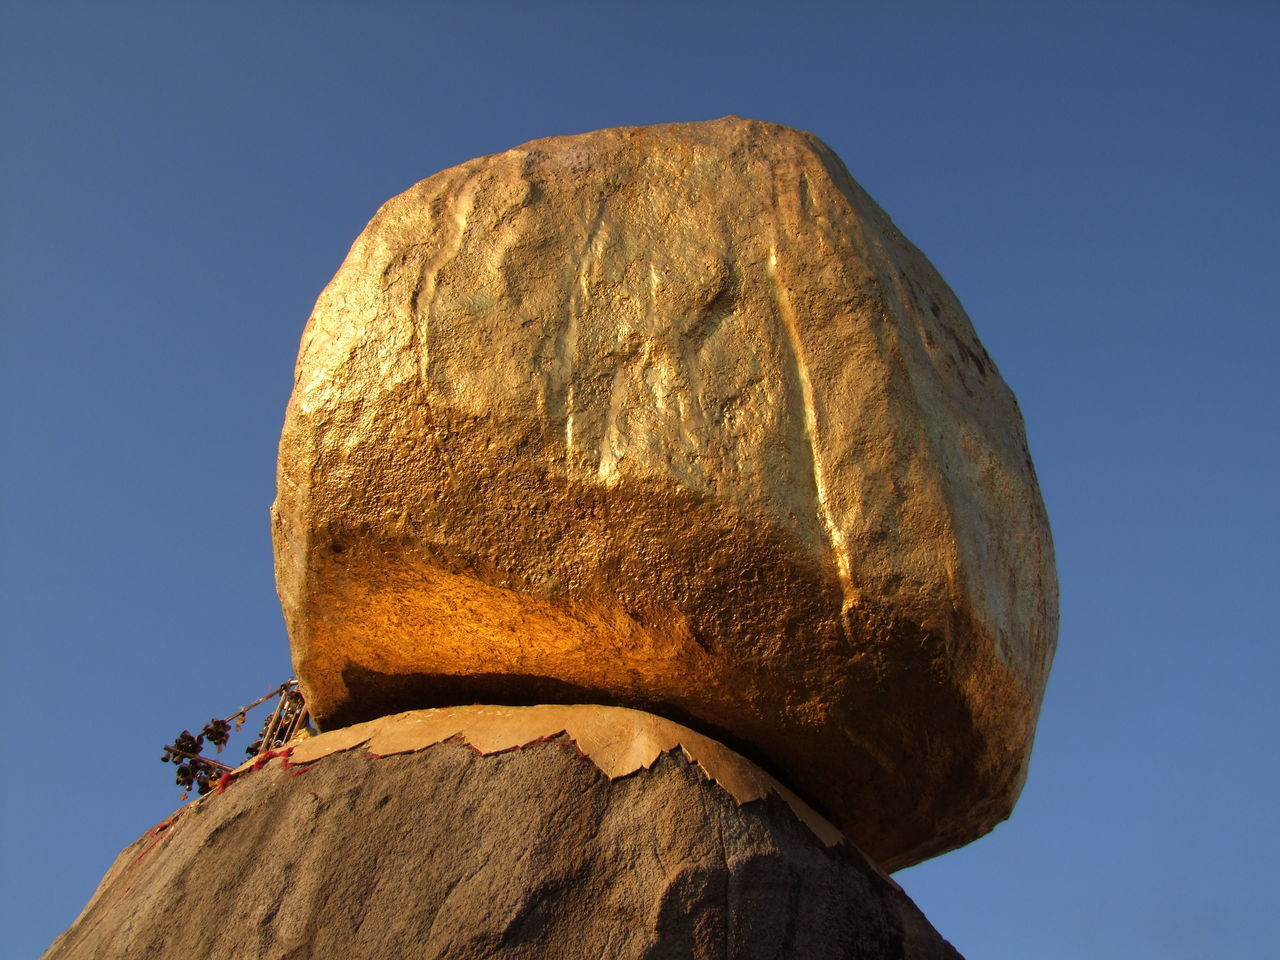 Golden Rock at Mount Kyaiktiyo Pagoda Blue Sky Boulder Boulder - Rock Buddhism Buddhist Pagoda Clear Sky Close Up Composition Full Frame Gold Coloured Golden Rock Golden Rock Pagoda Kinpun Low Angle View Mount Kyaiktiyo Mount Kyaiktiyo Pagoda Myanmar No People Outdoor Photography Place Of Pilgrimage Place Of Prayer Place Of Worship Rock Sunlight And Shade Travel Destination